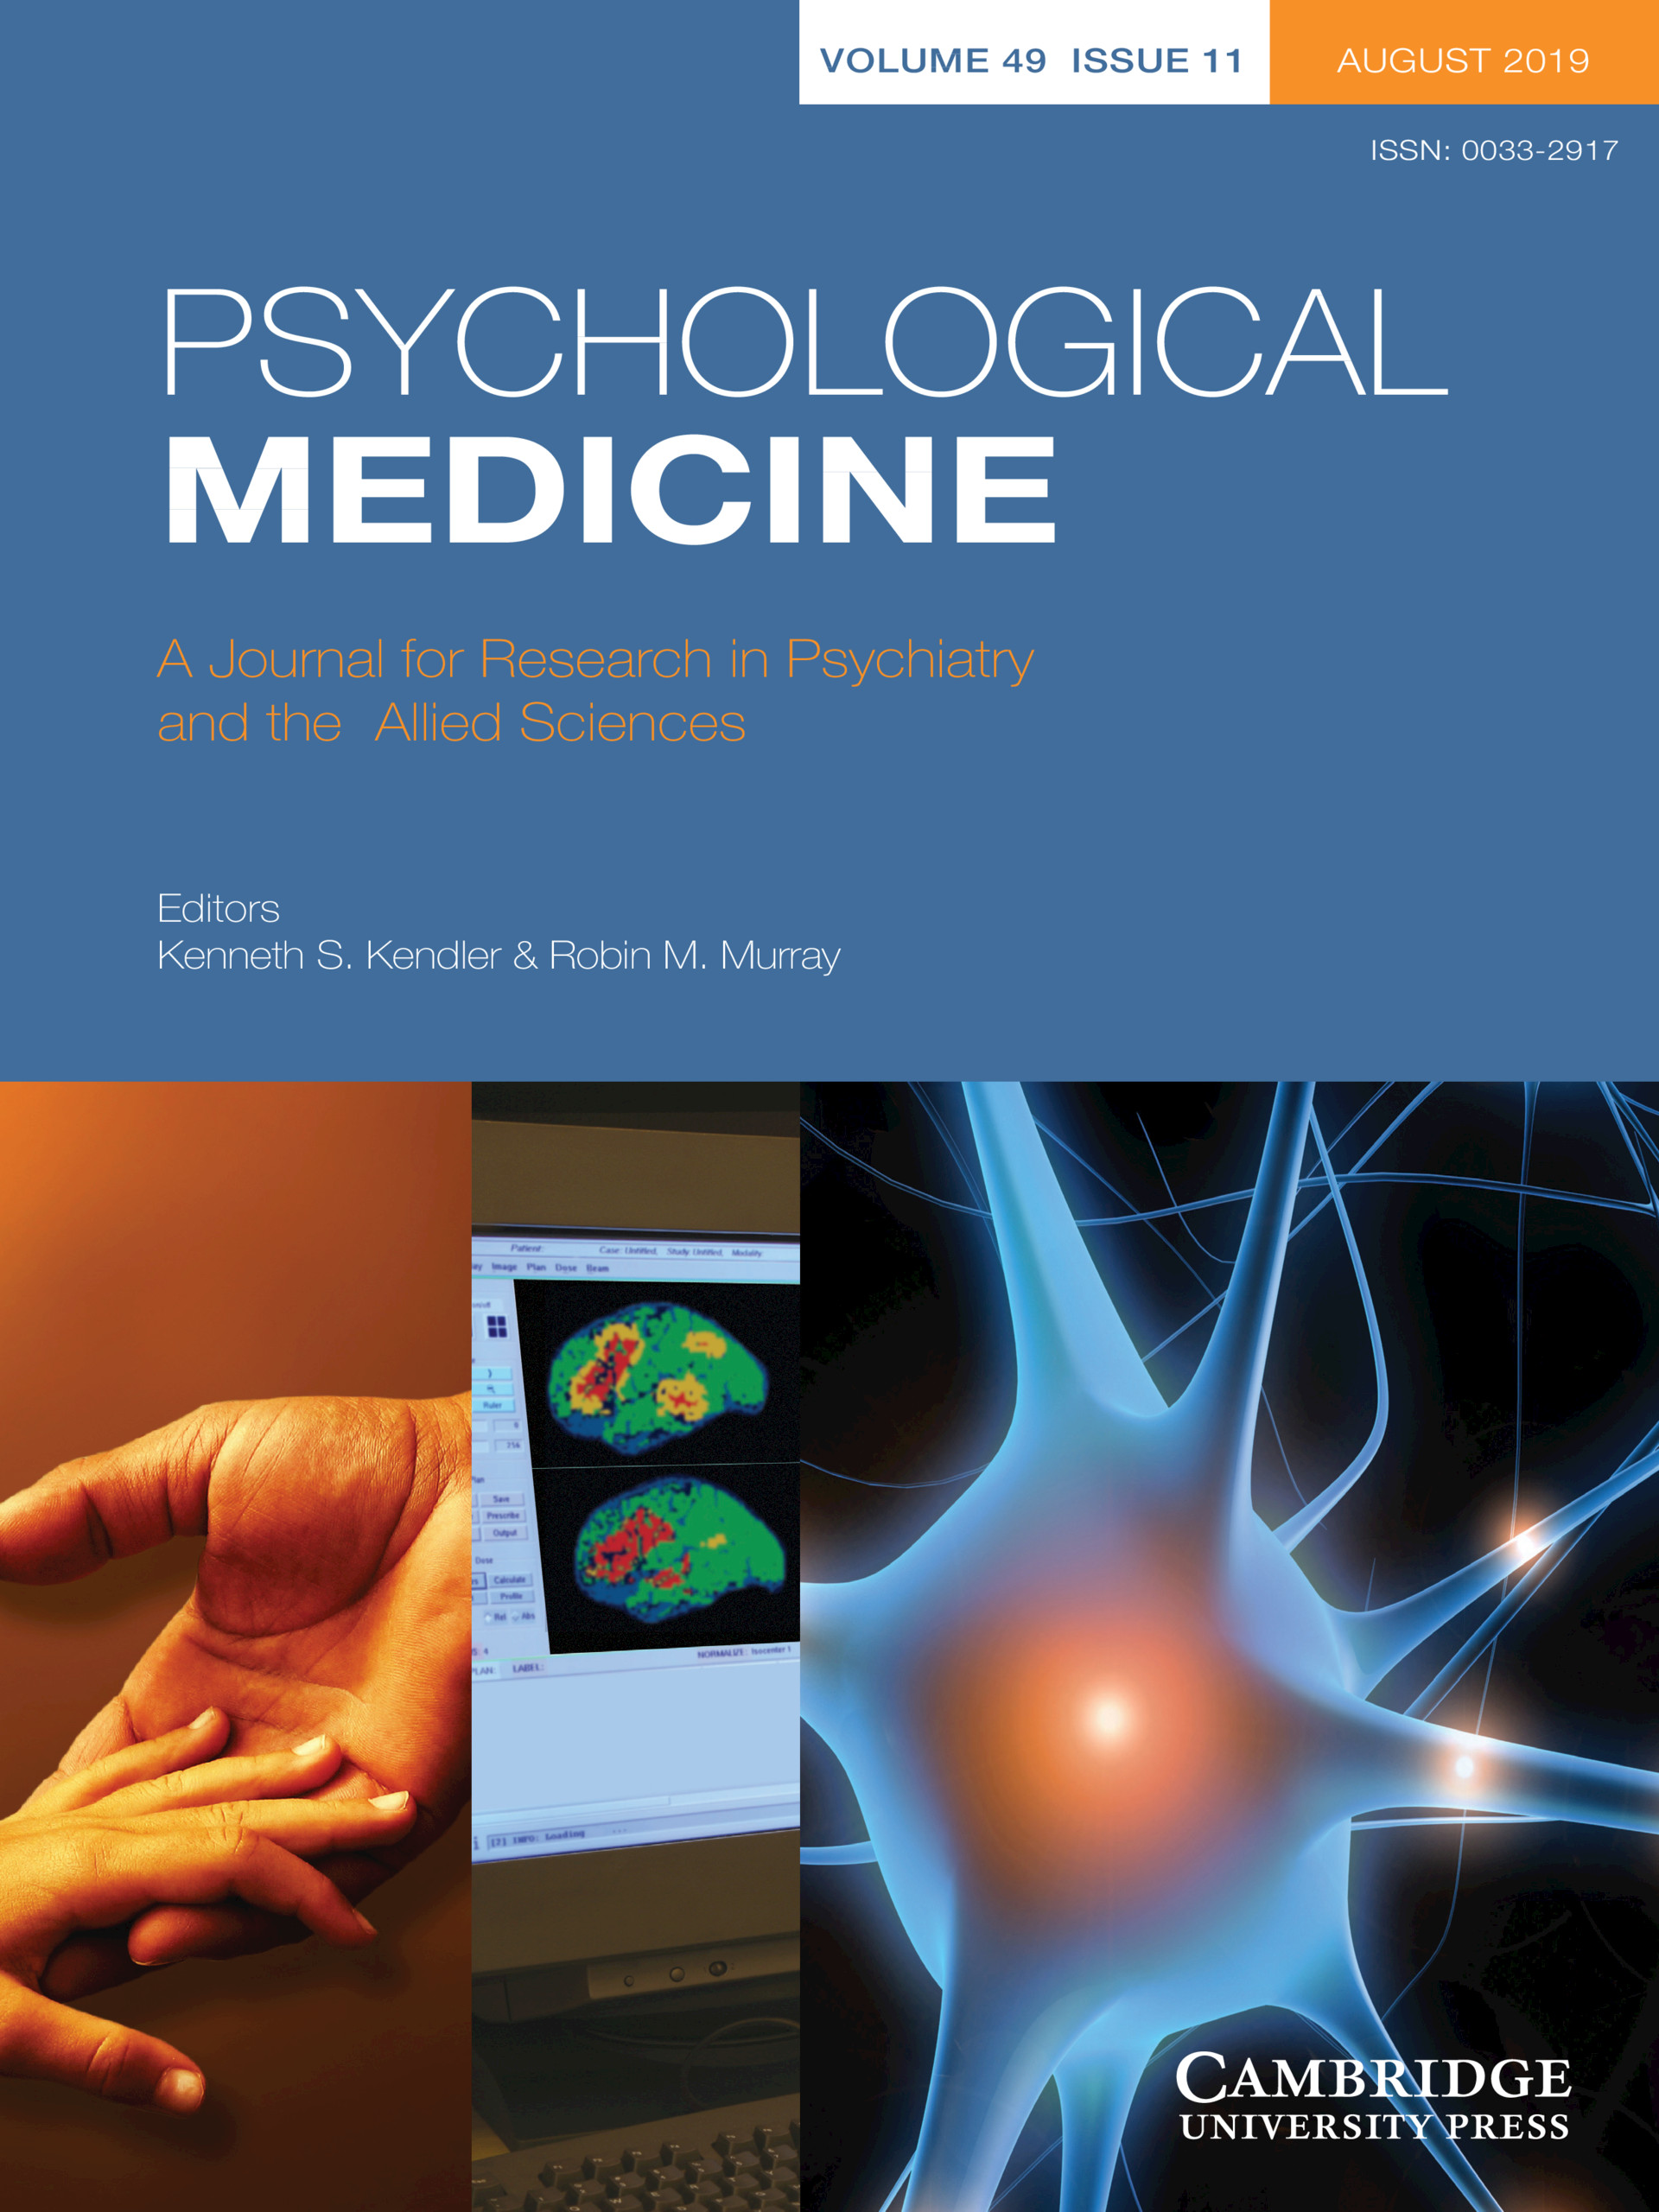 Psychological Medicine | Latest issue | Cambridge Core